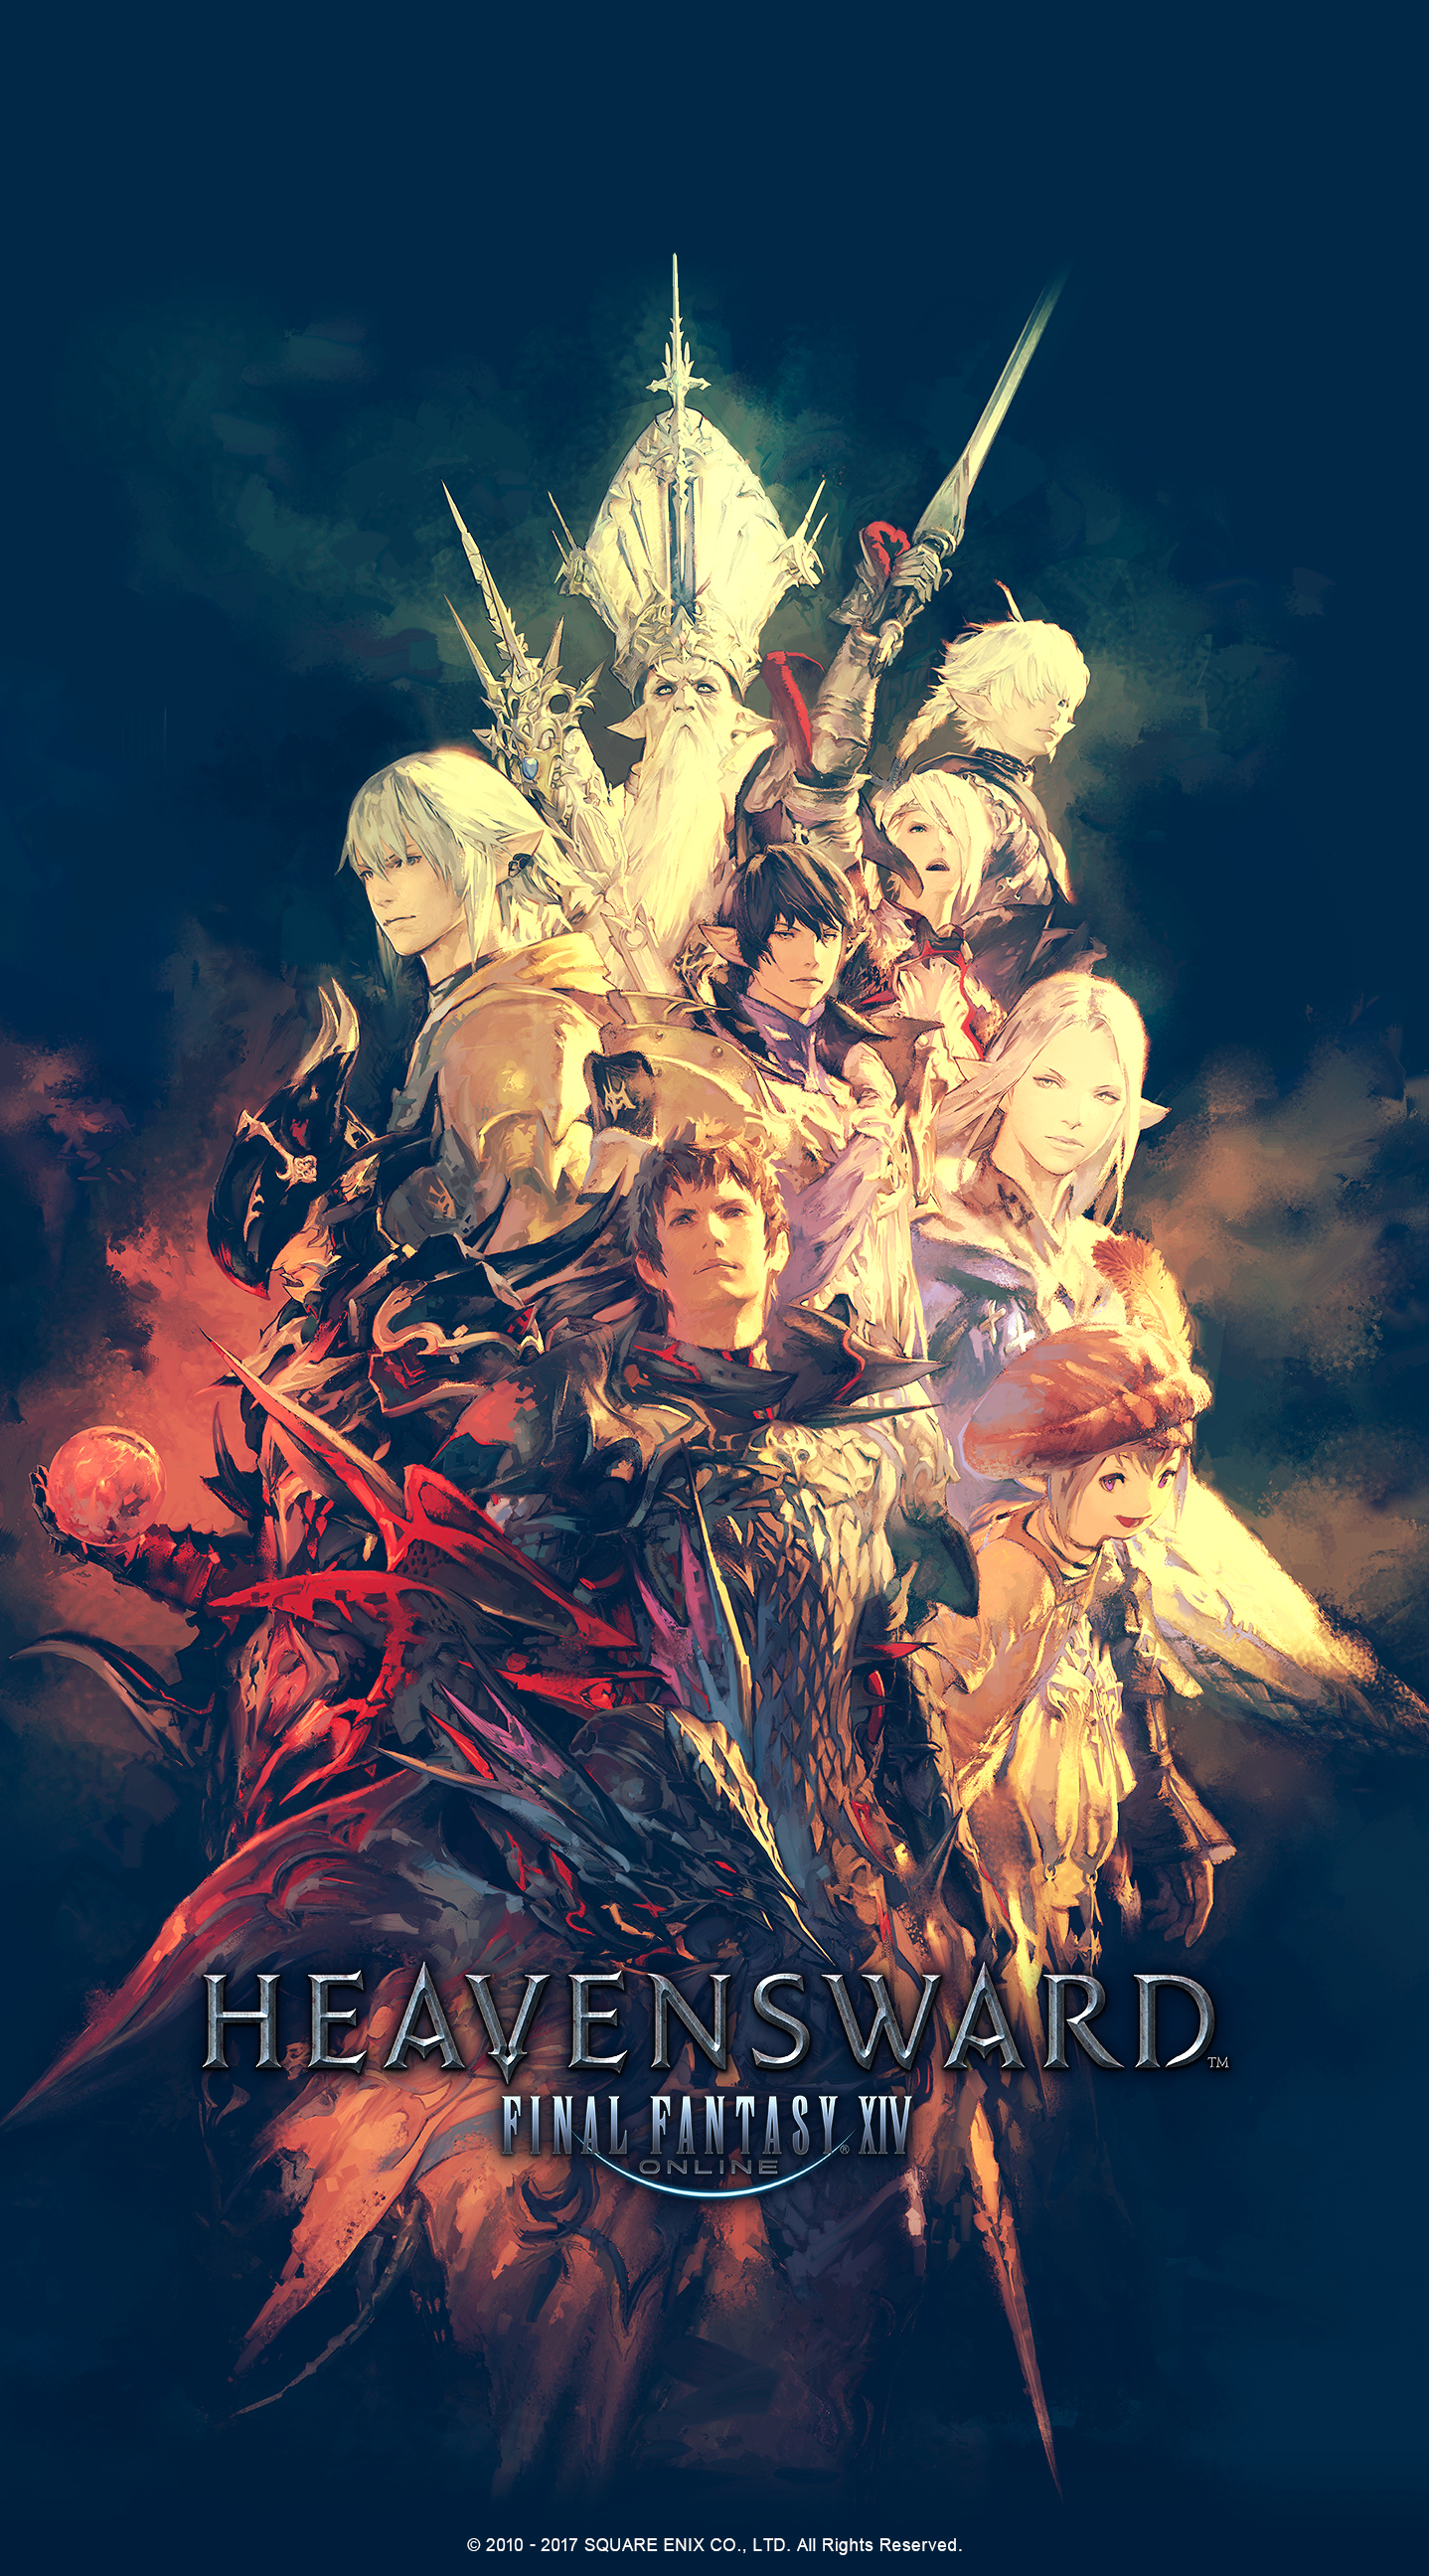 Final Fantasy Xiv Fan Kit Released Final Fantasy Xiv The Lodestone